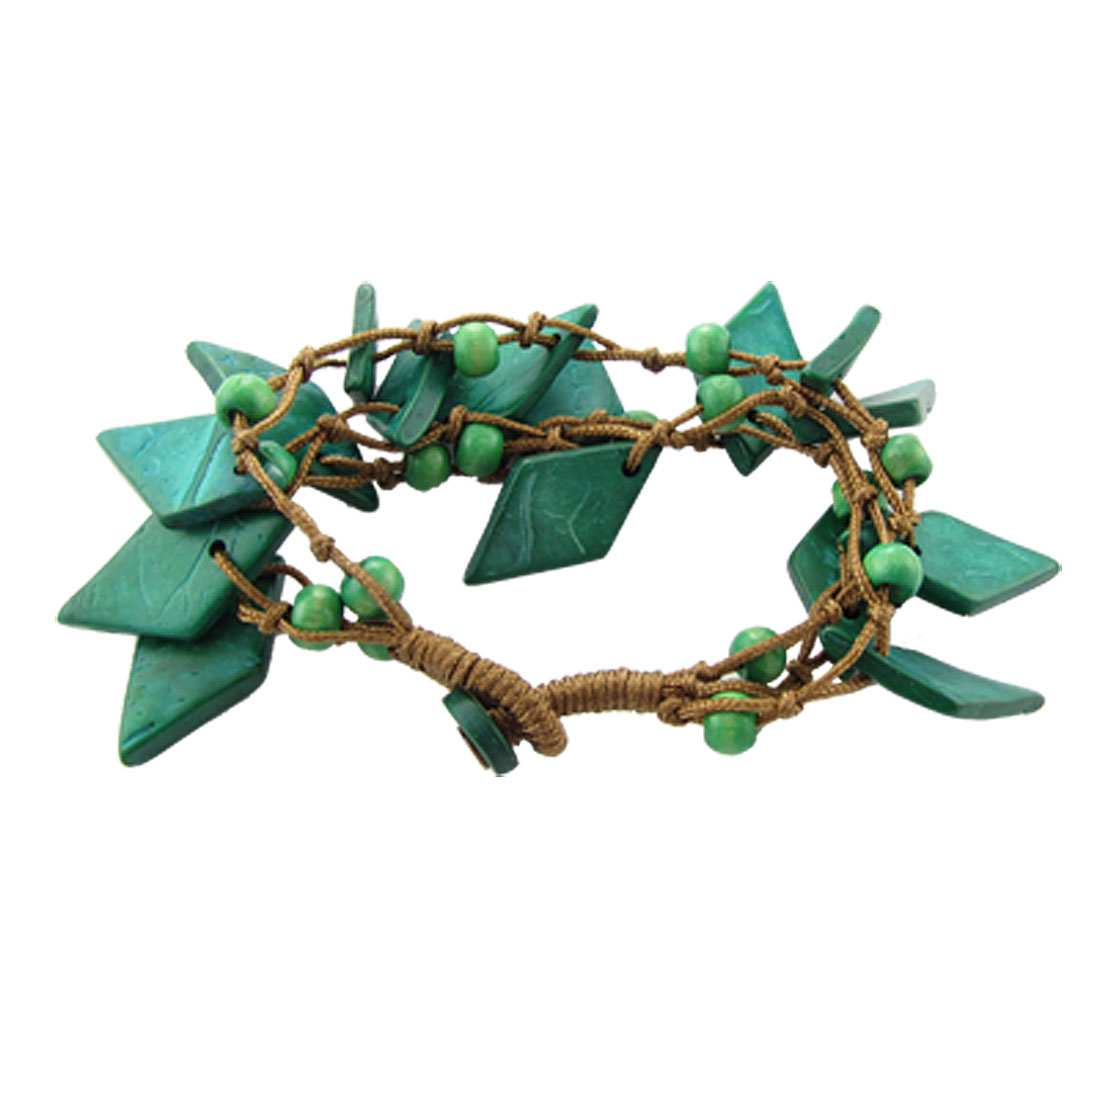 Green Rhombus Beads Coconut Shell Charm Bracelet for Ladies